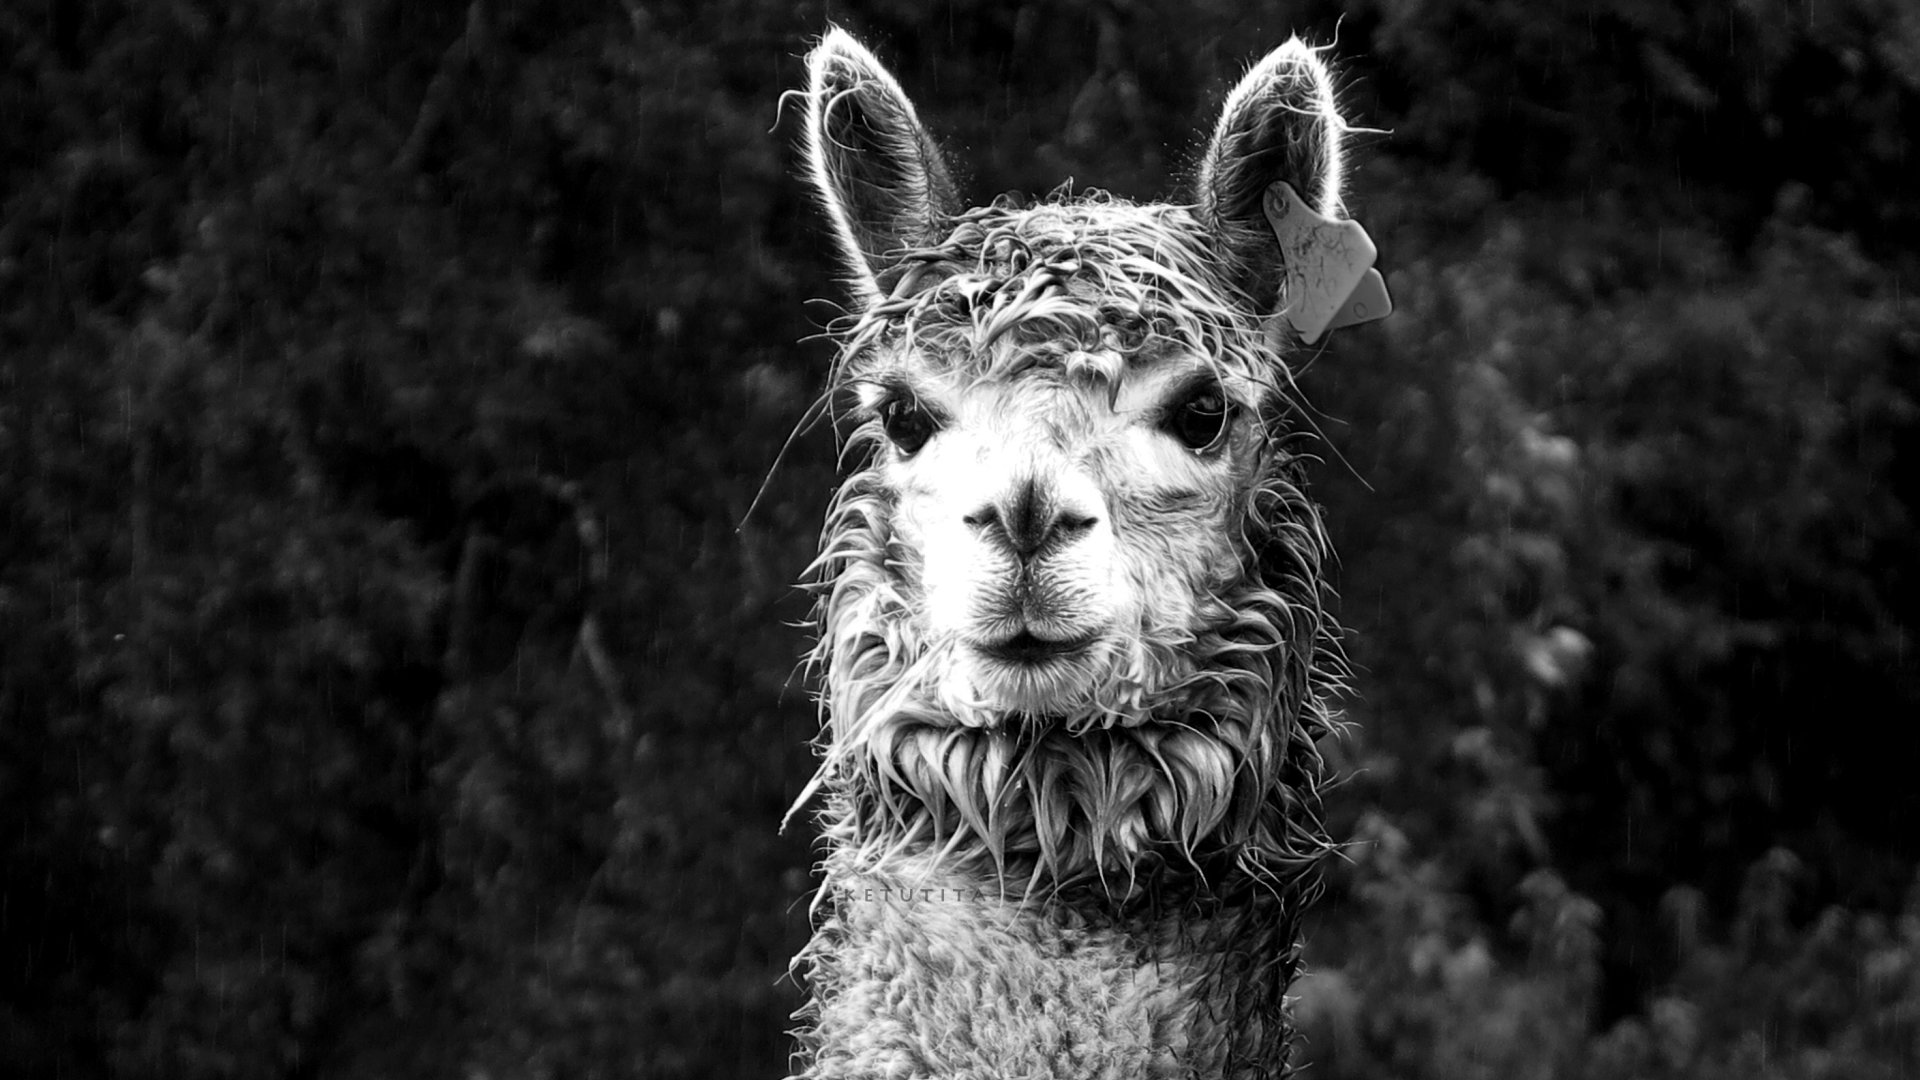 Download full hd 1920x1080 Alpaca computer background ID:127031 for free